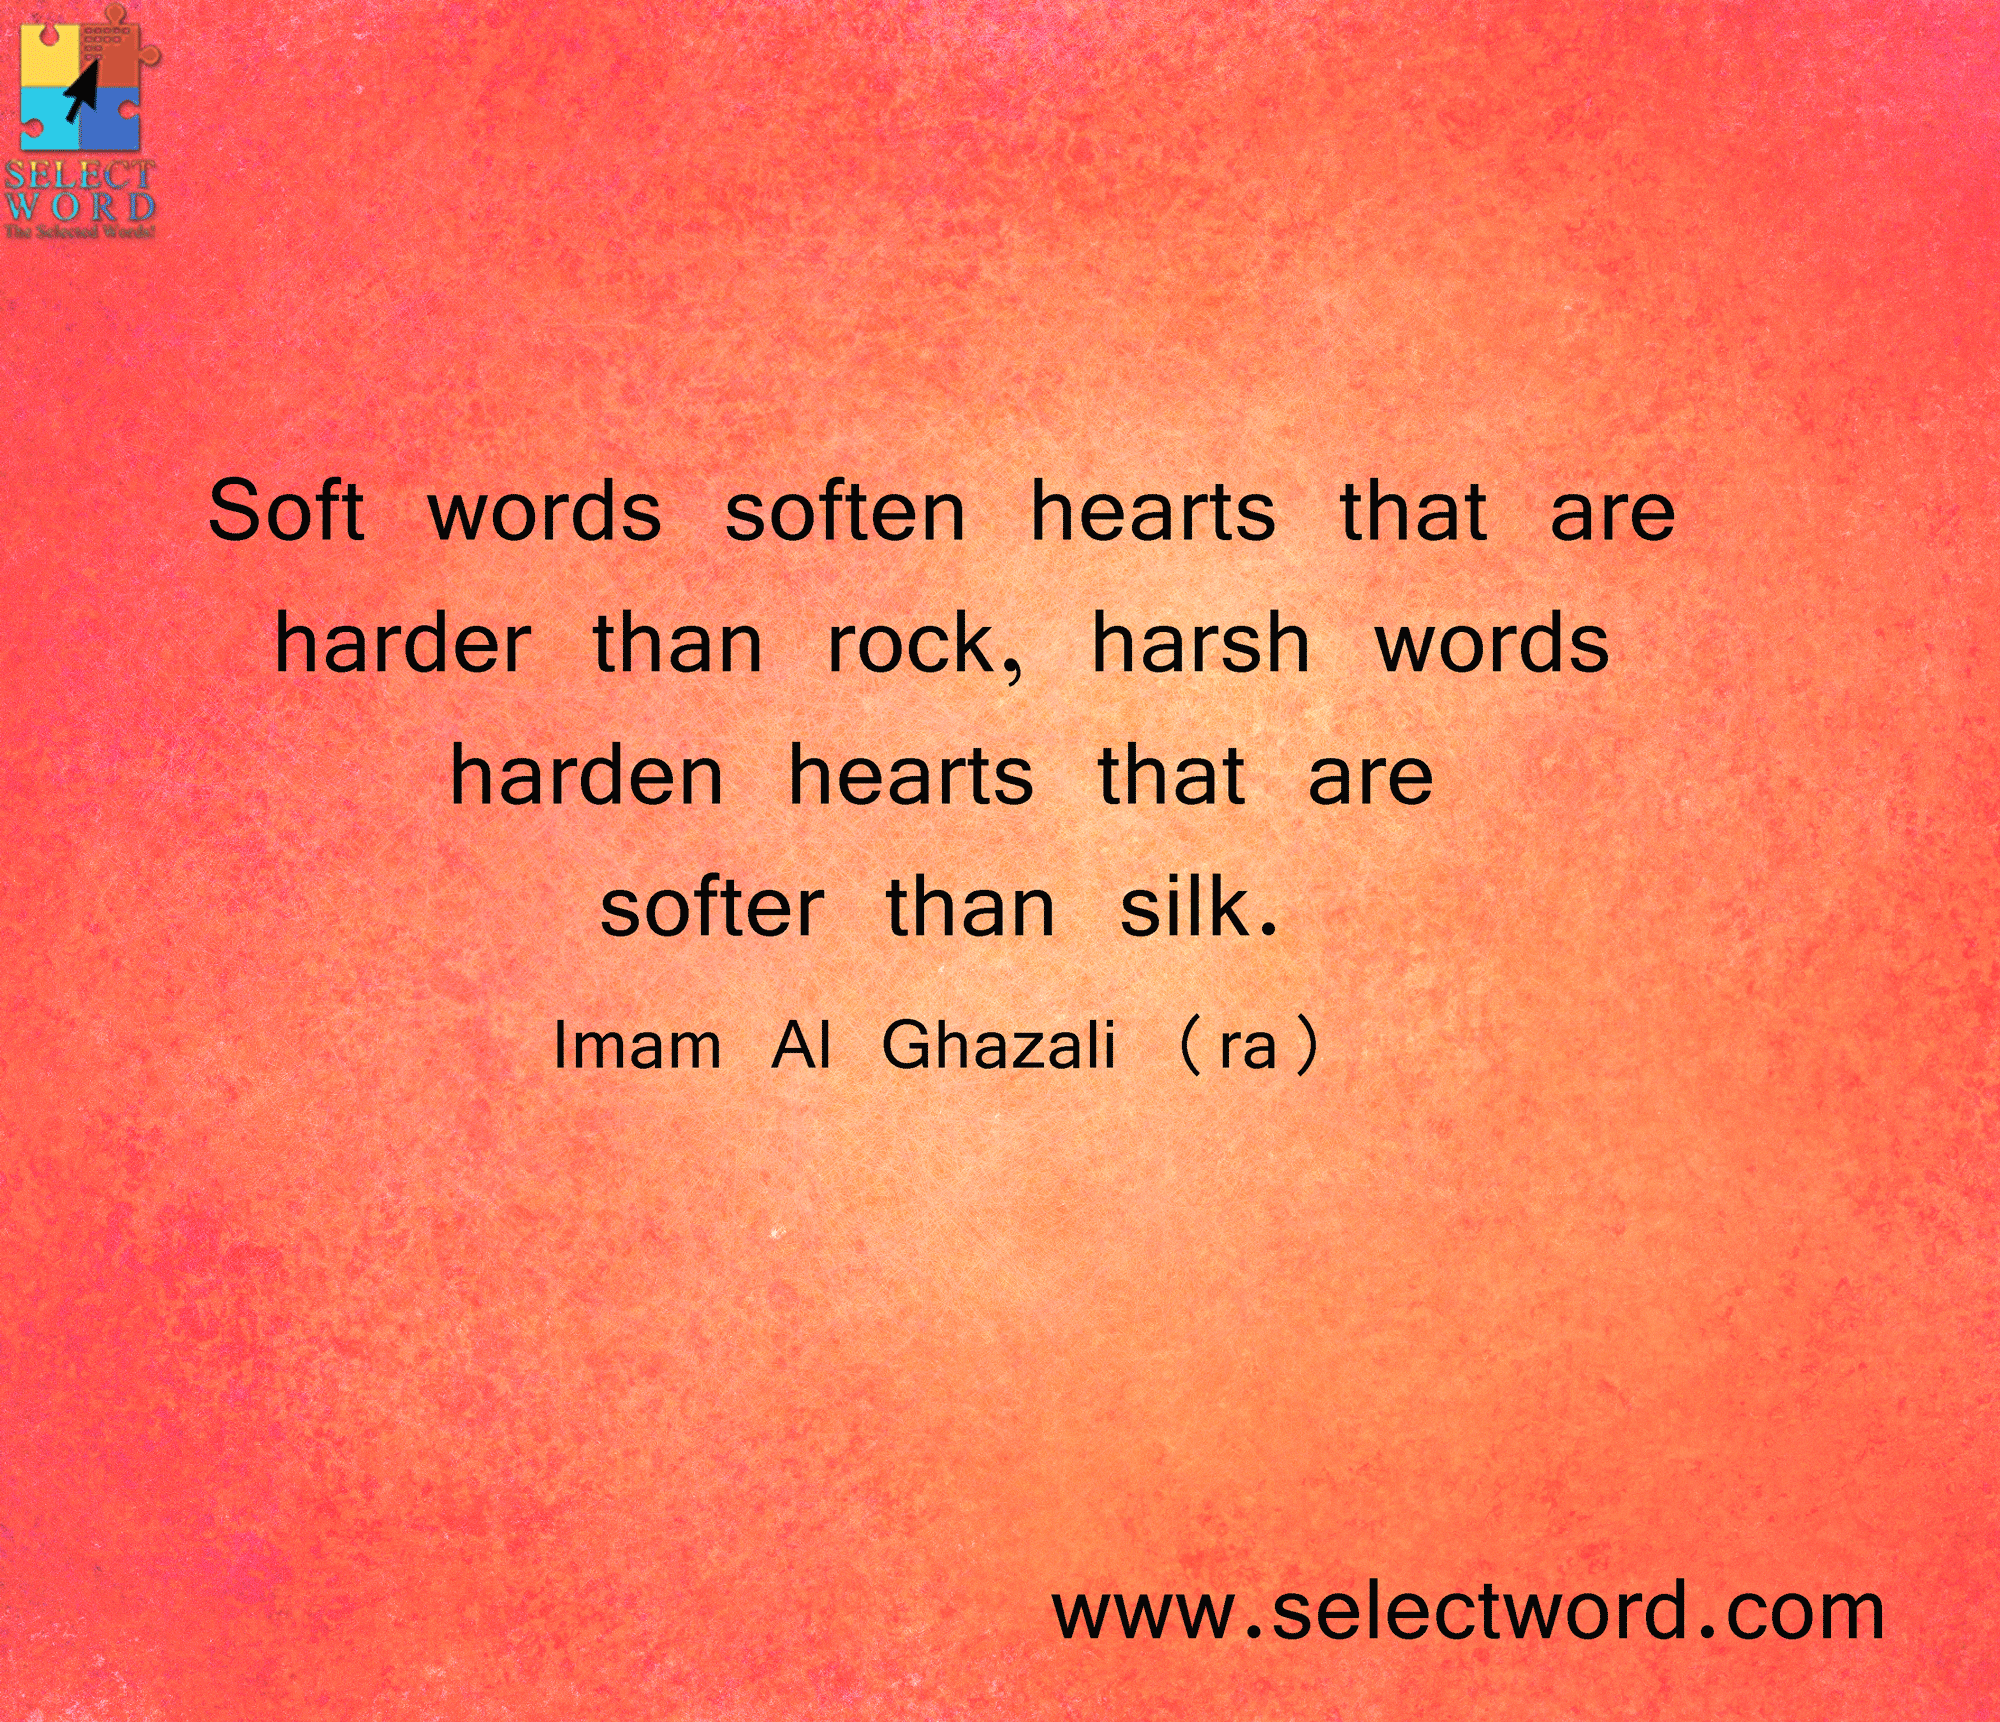 Soft words soften hearts that are harder than rock, harsh